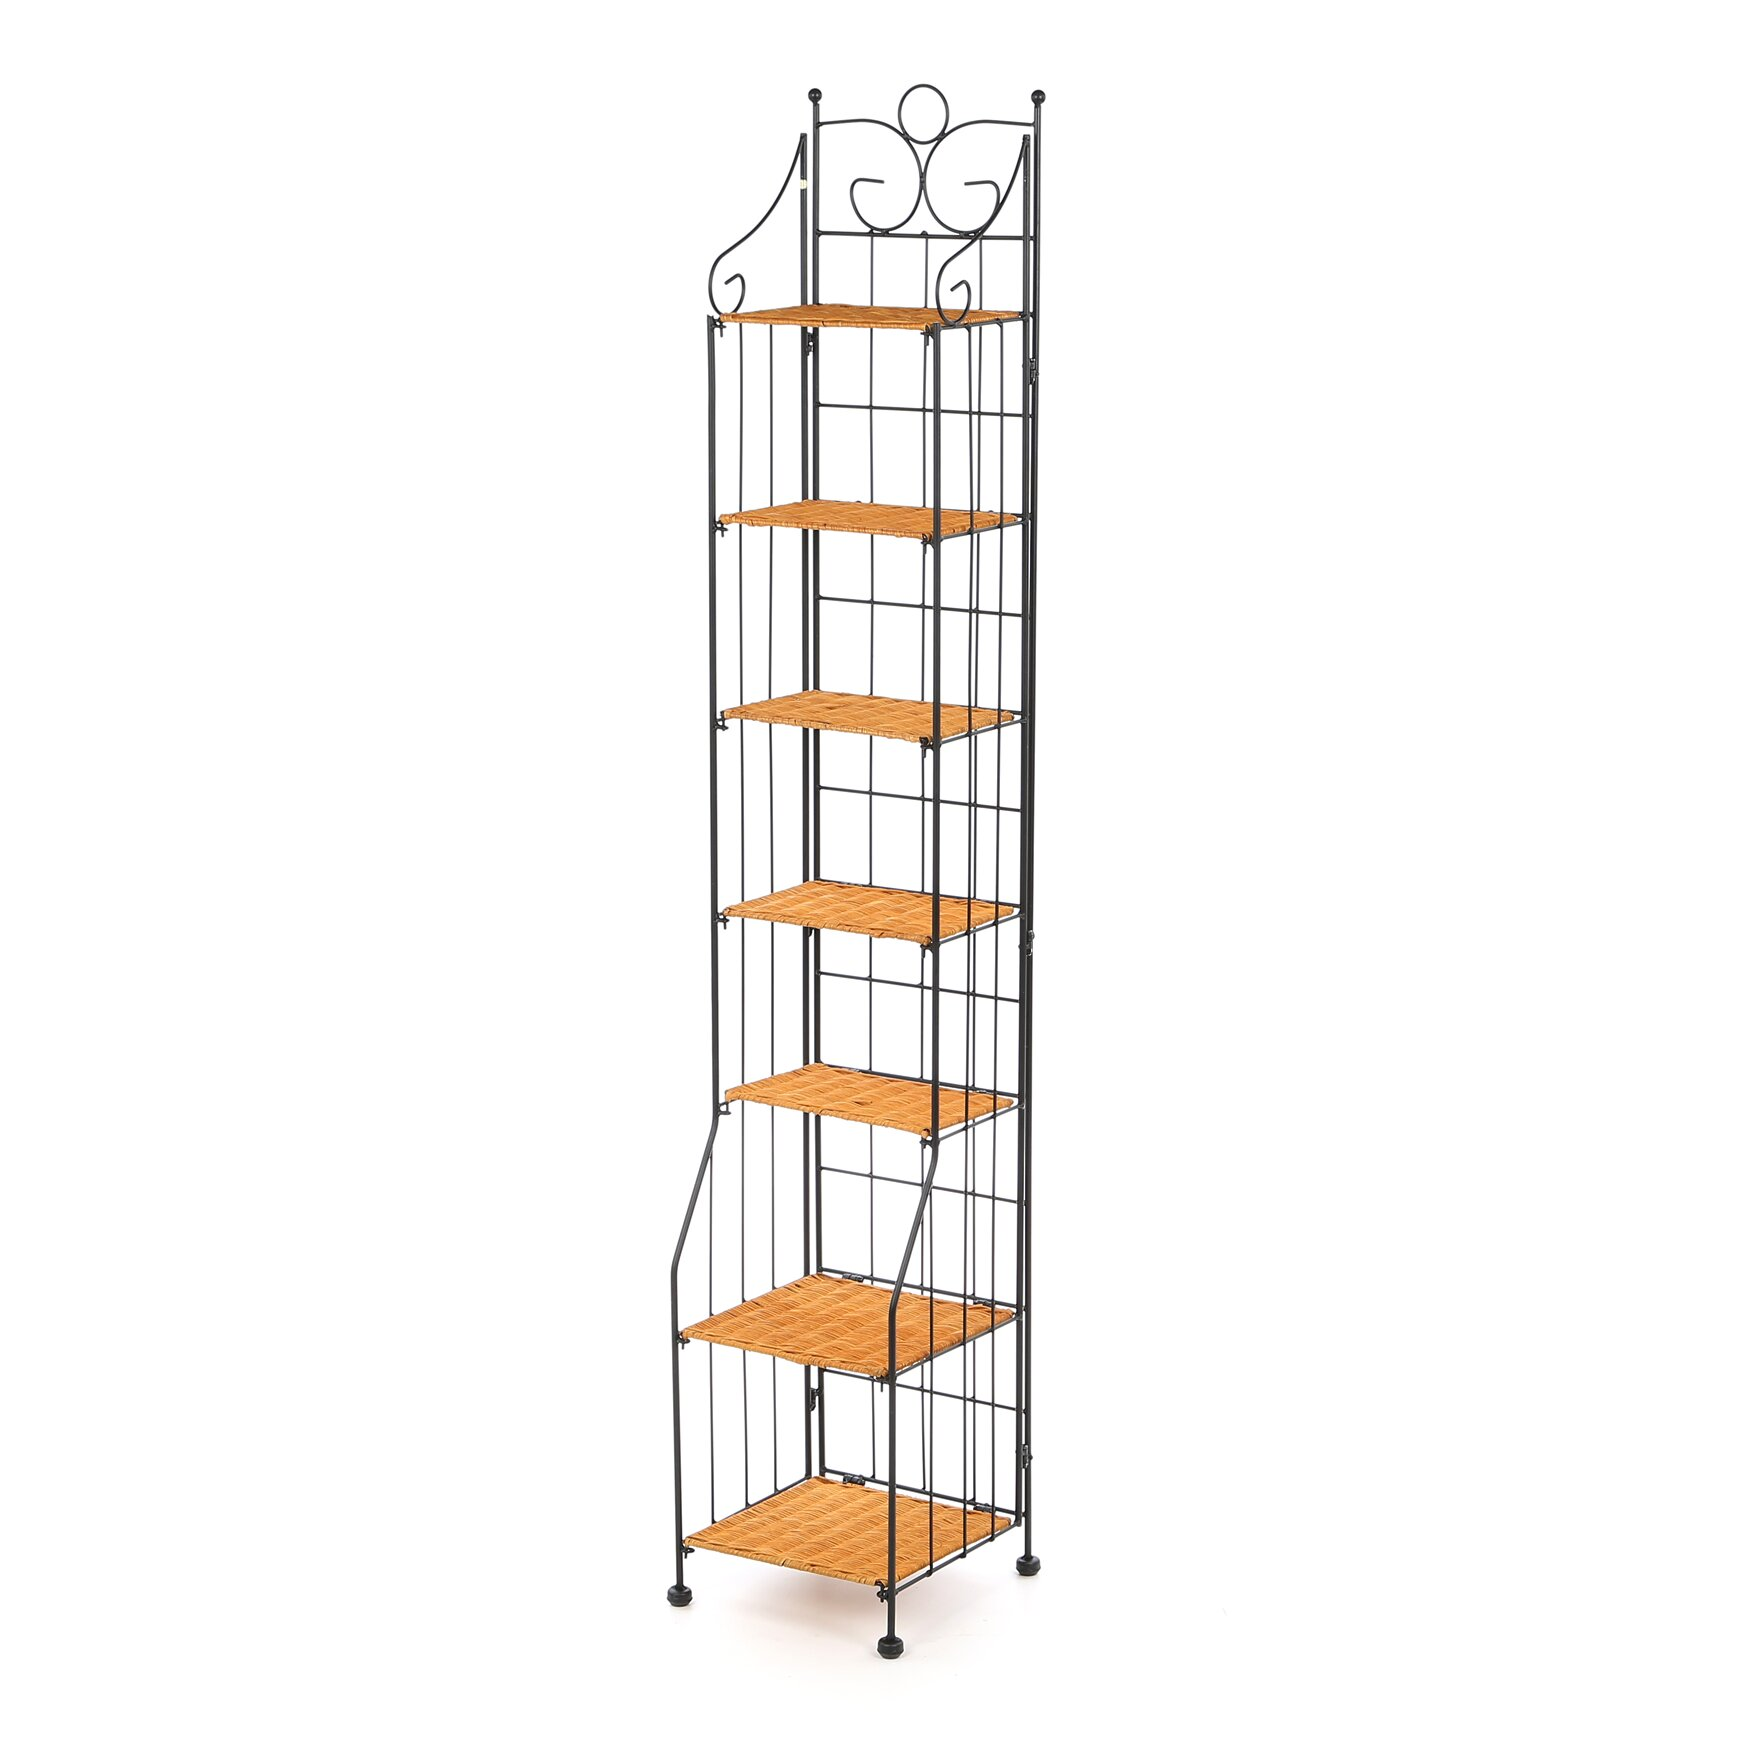 Charlton home multimedia storage rack reviews wayfair for Storage charlton